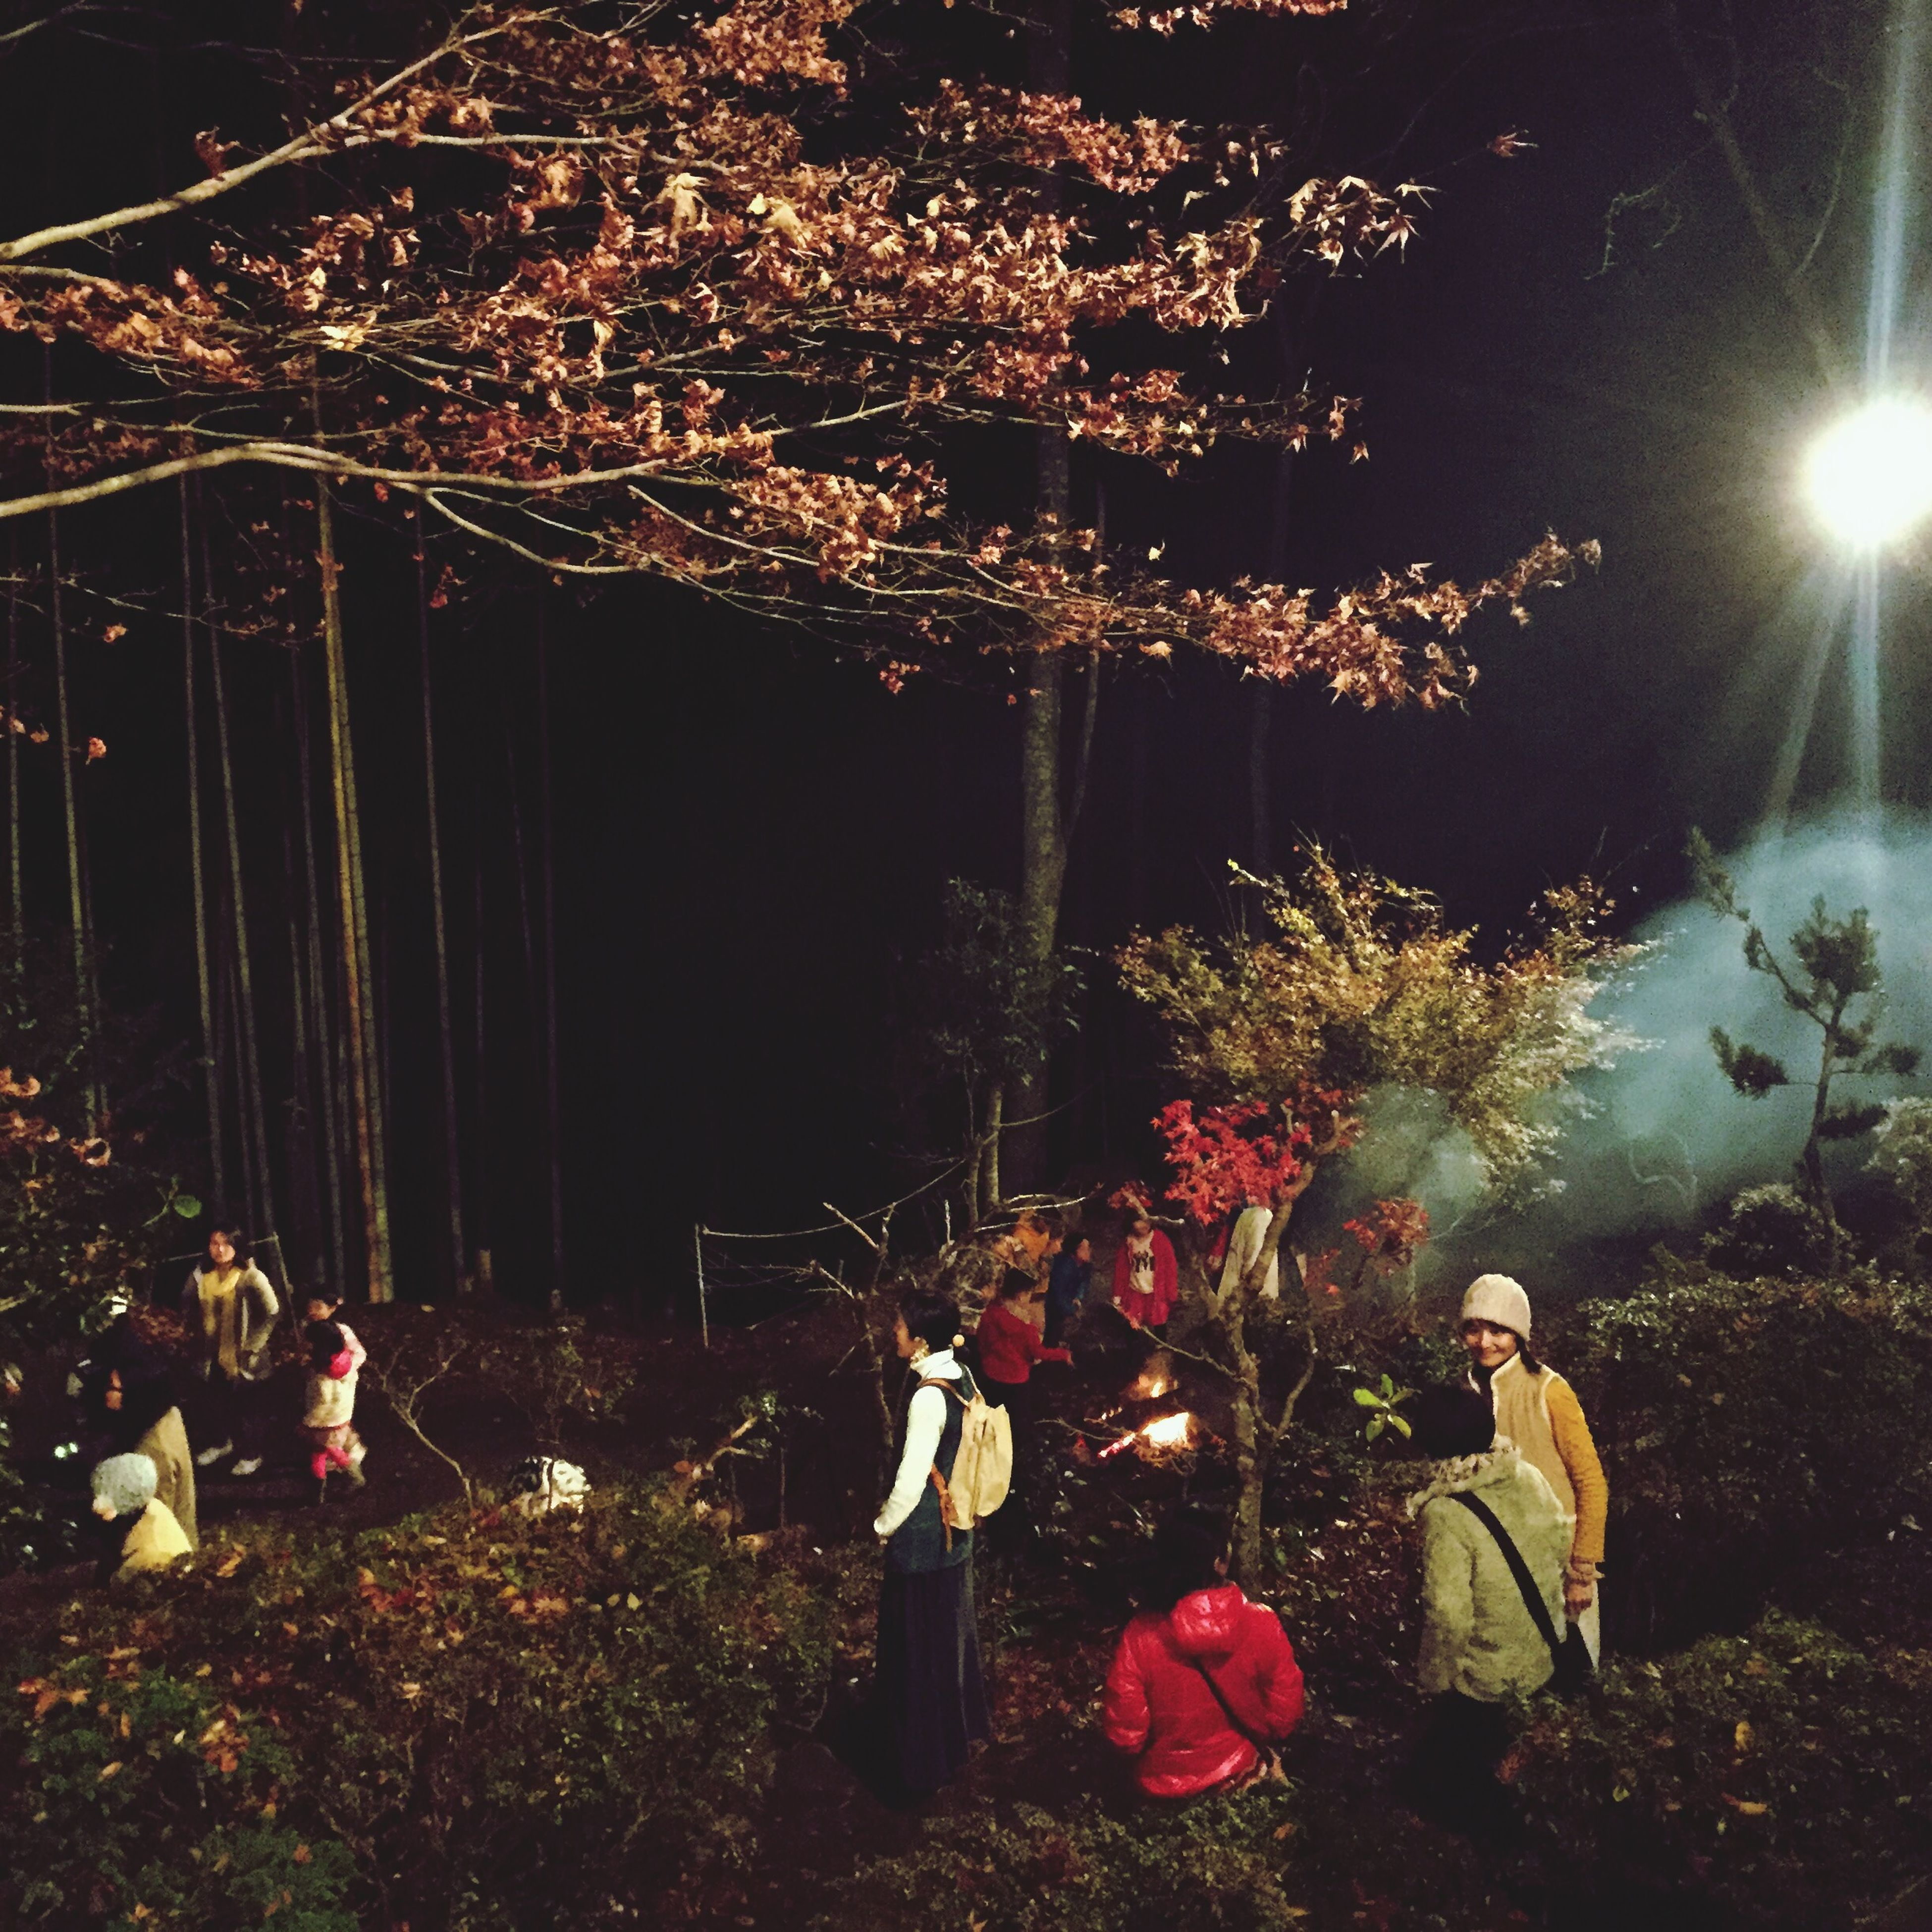 illuminated, night, lifestyles, leisure activity, men, celebration, person, lighting equipment, arts culture and entertainment, tree, event, standing, rear view, togetherness, enjoyment, large group of people, sitting, casual clothing